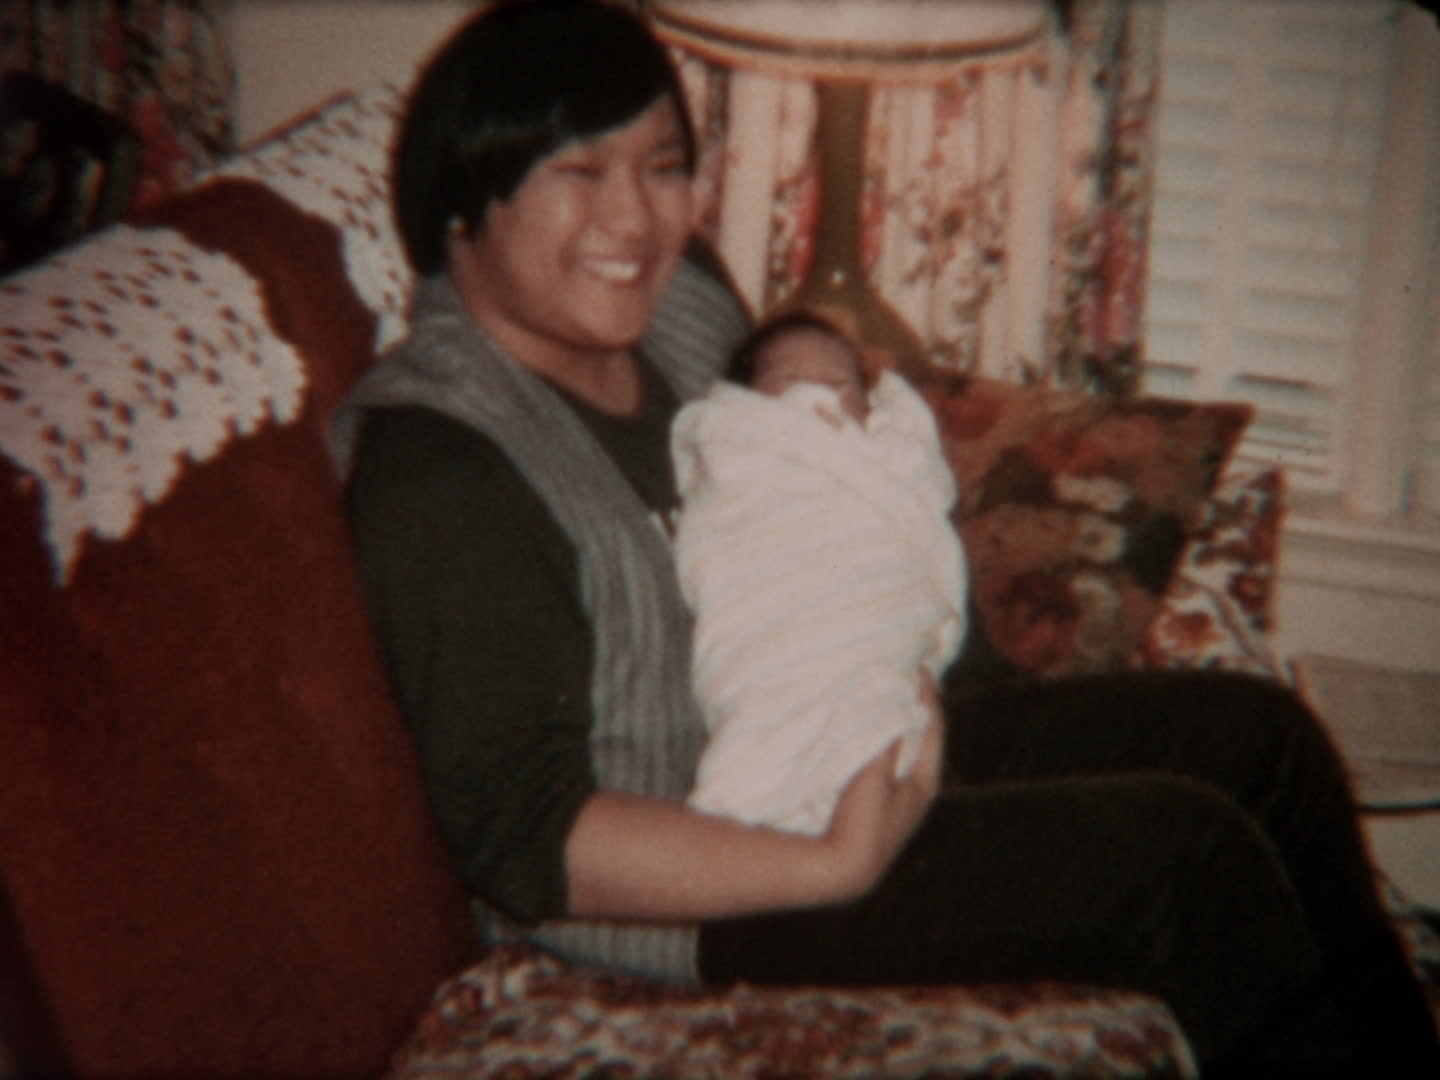 Watada family videos : woman holding a baby